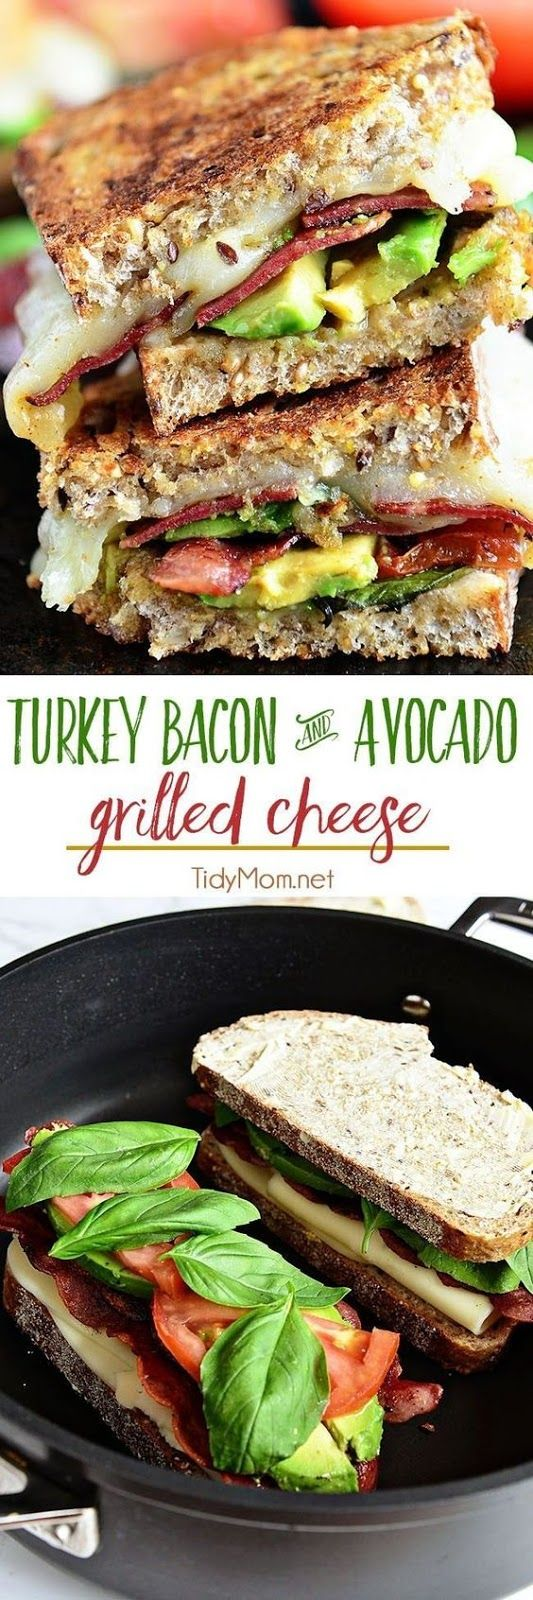 TURKEY BACON AND AVOCADO GRILLED CHEESE   Food And Cake Recipes